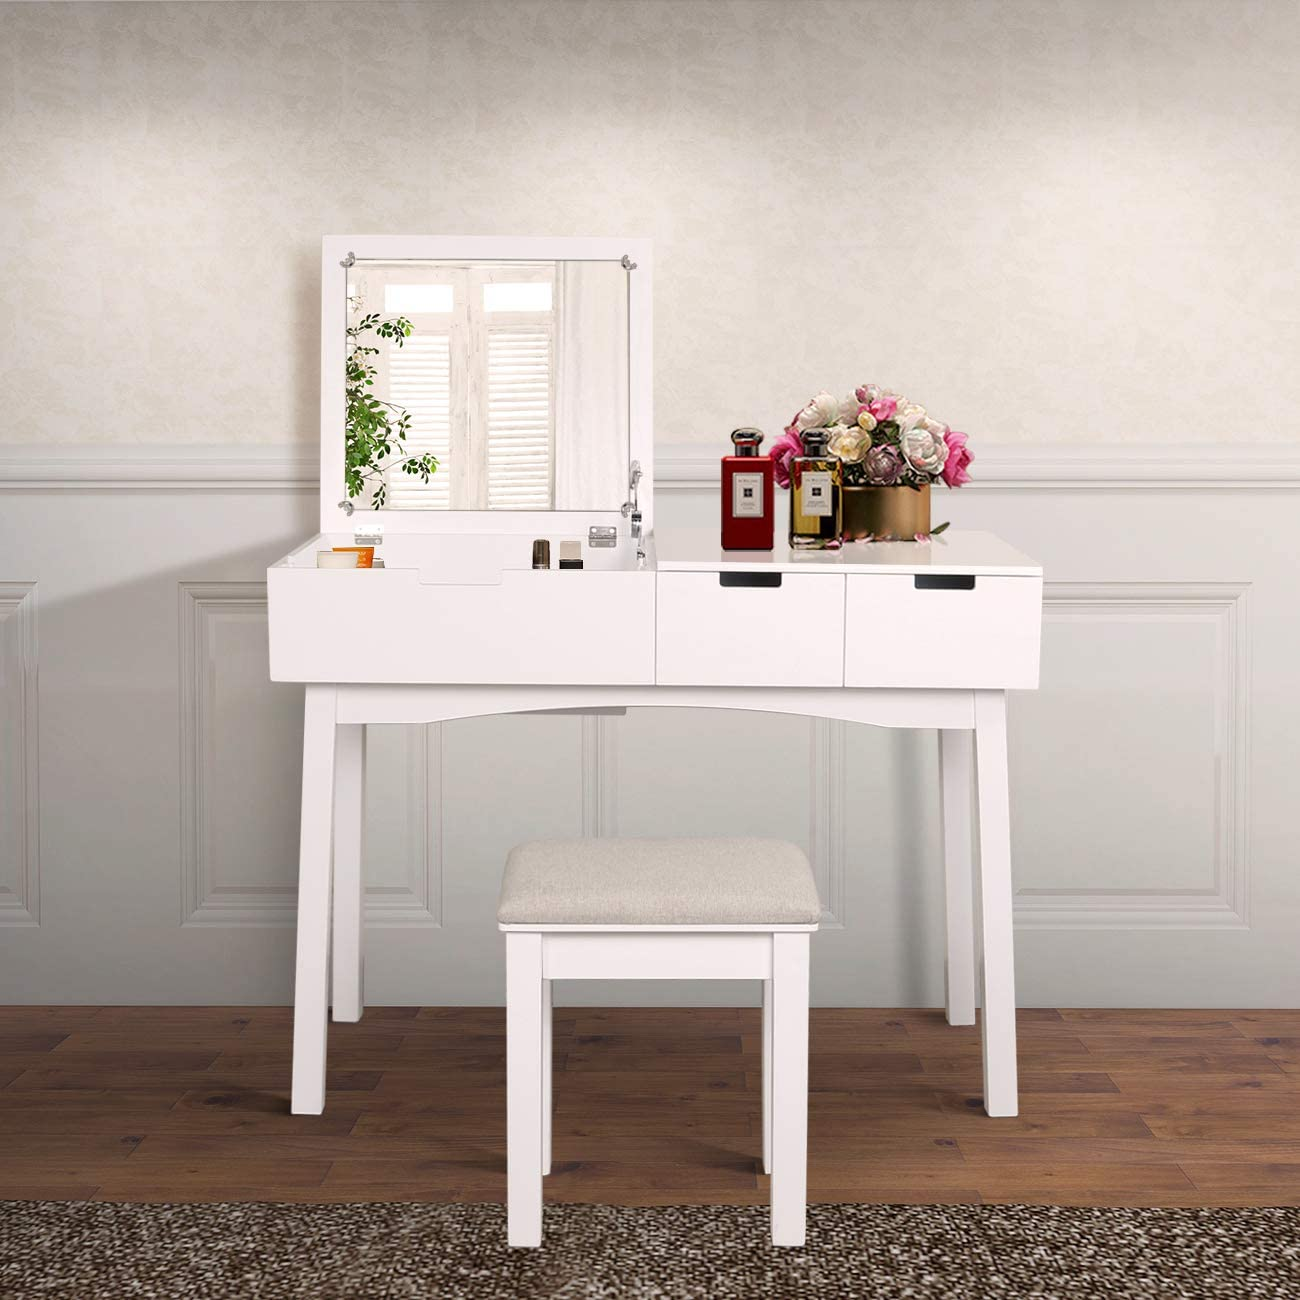 JIASTING Vanity Beauty Station, Dresing Table Vanity Set with Flip Top Mirror,1 Large Organization 2 Drawers Makeup Dresser, Writing Desk